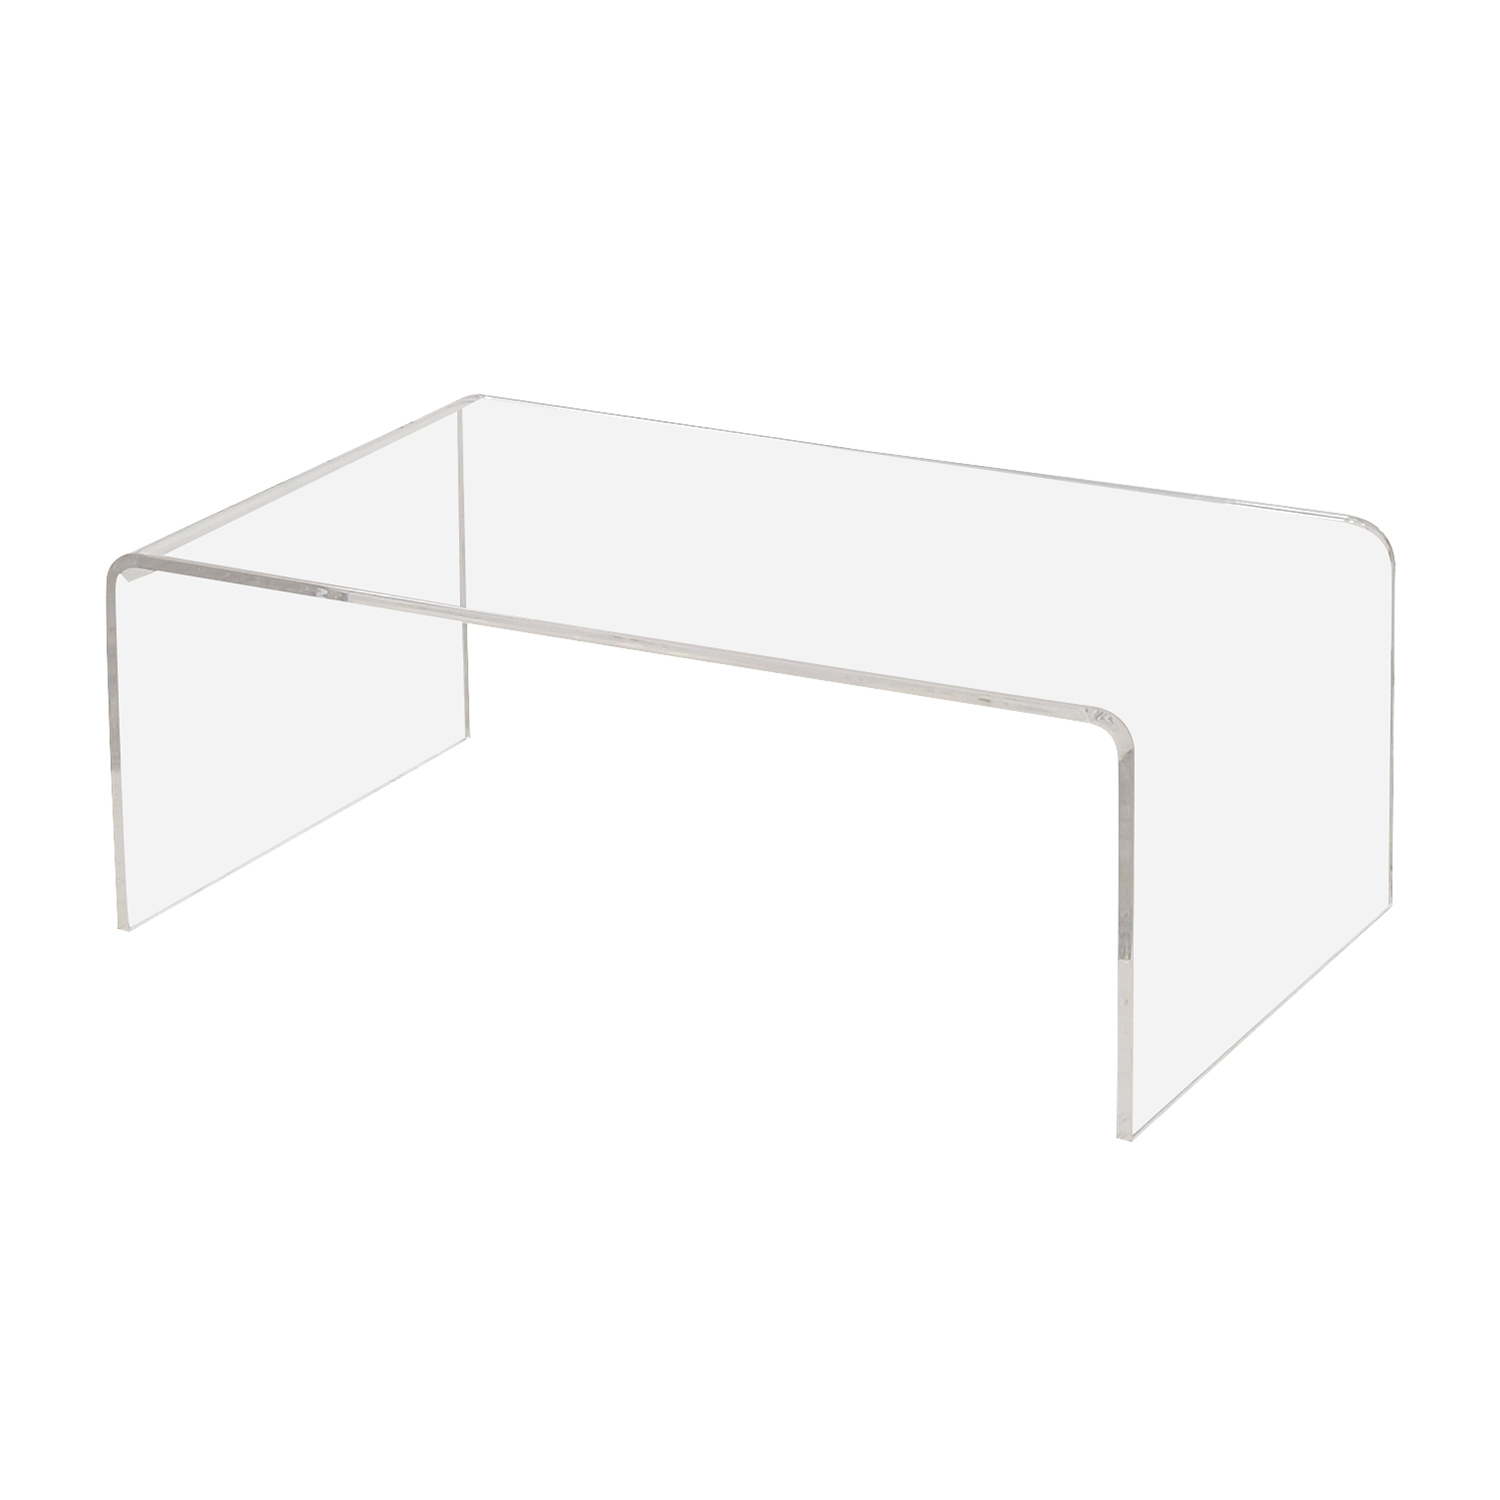 CB2 Peekaboo Acrylic Coffee Table / Coffee Tables